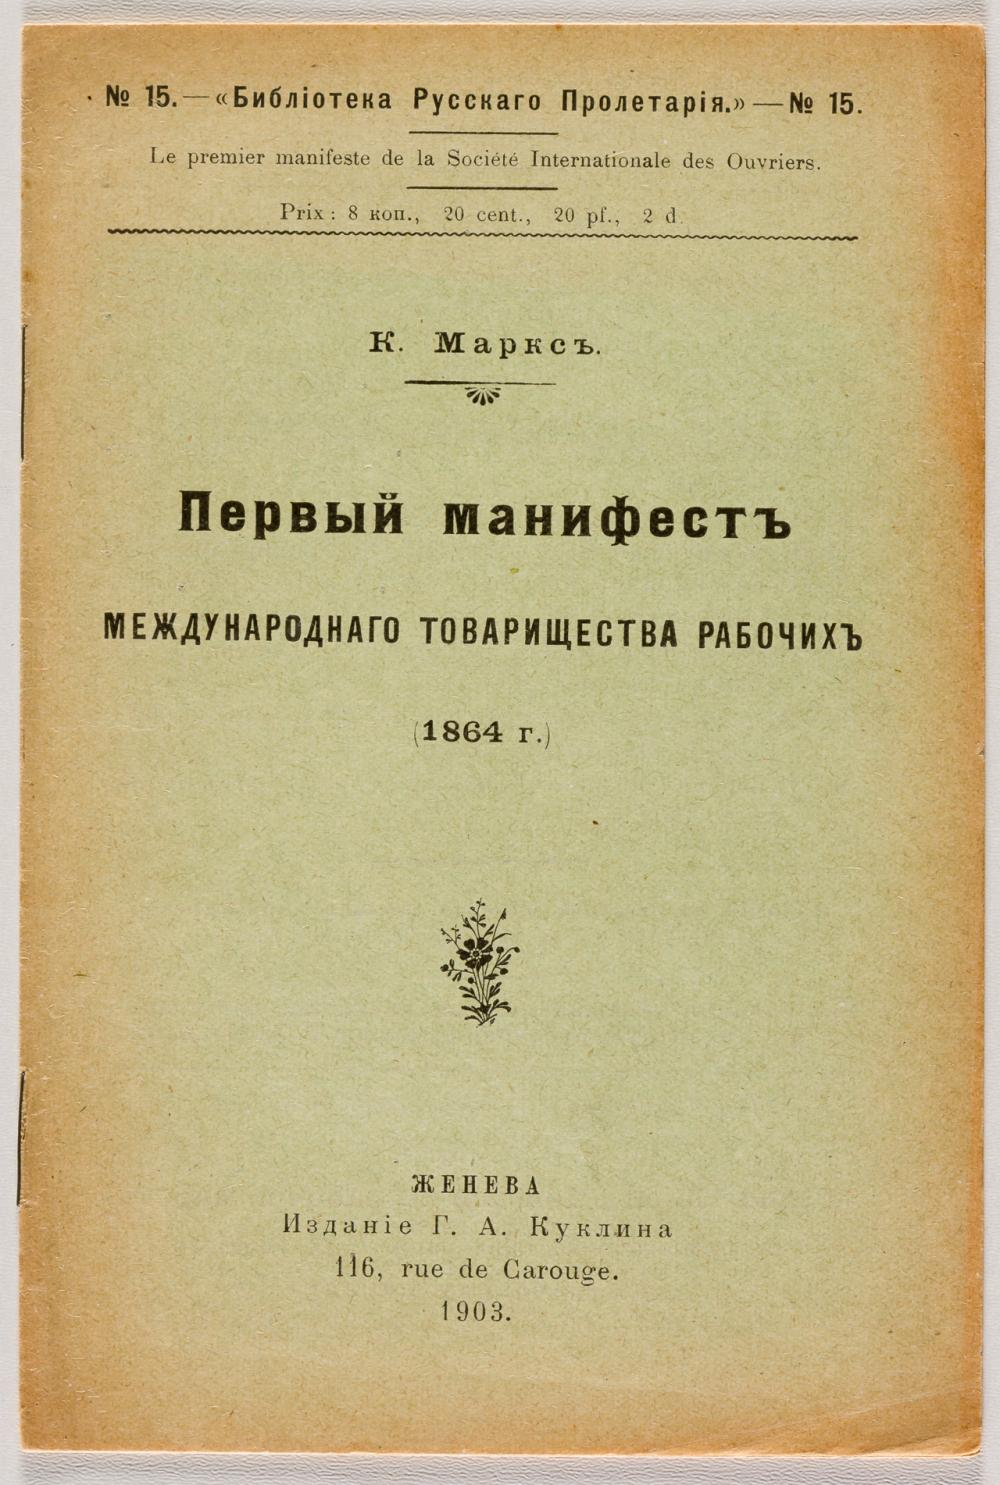 K. MARX: The first manifesto of the international workers' association 1864